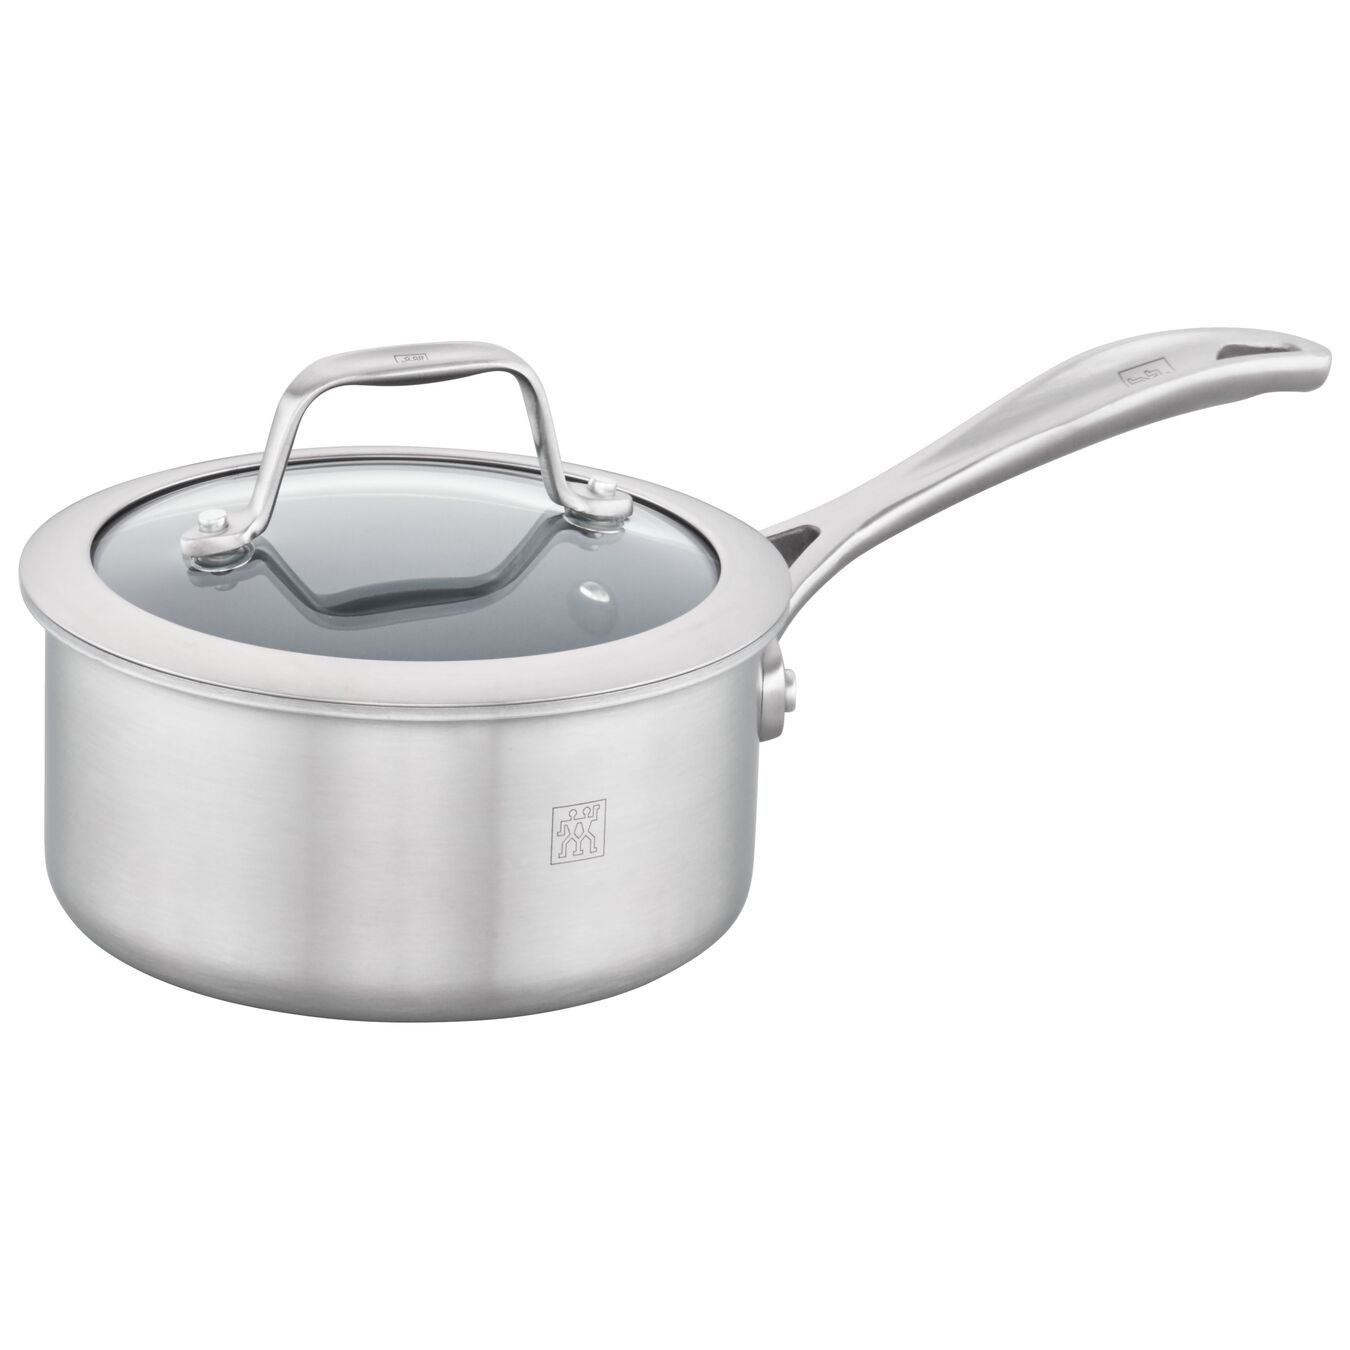 3-ply 1-qt Stainless Steel Ceramic Nonstick Saucepan,,large 1